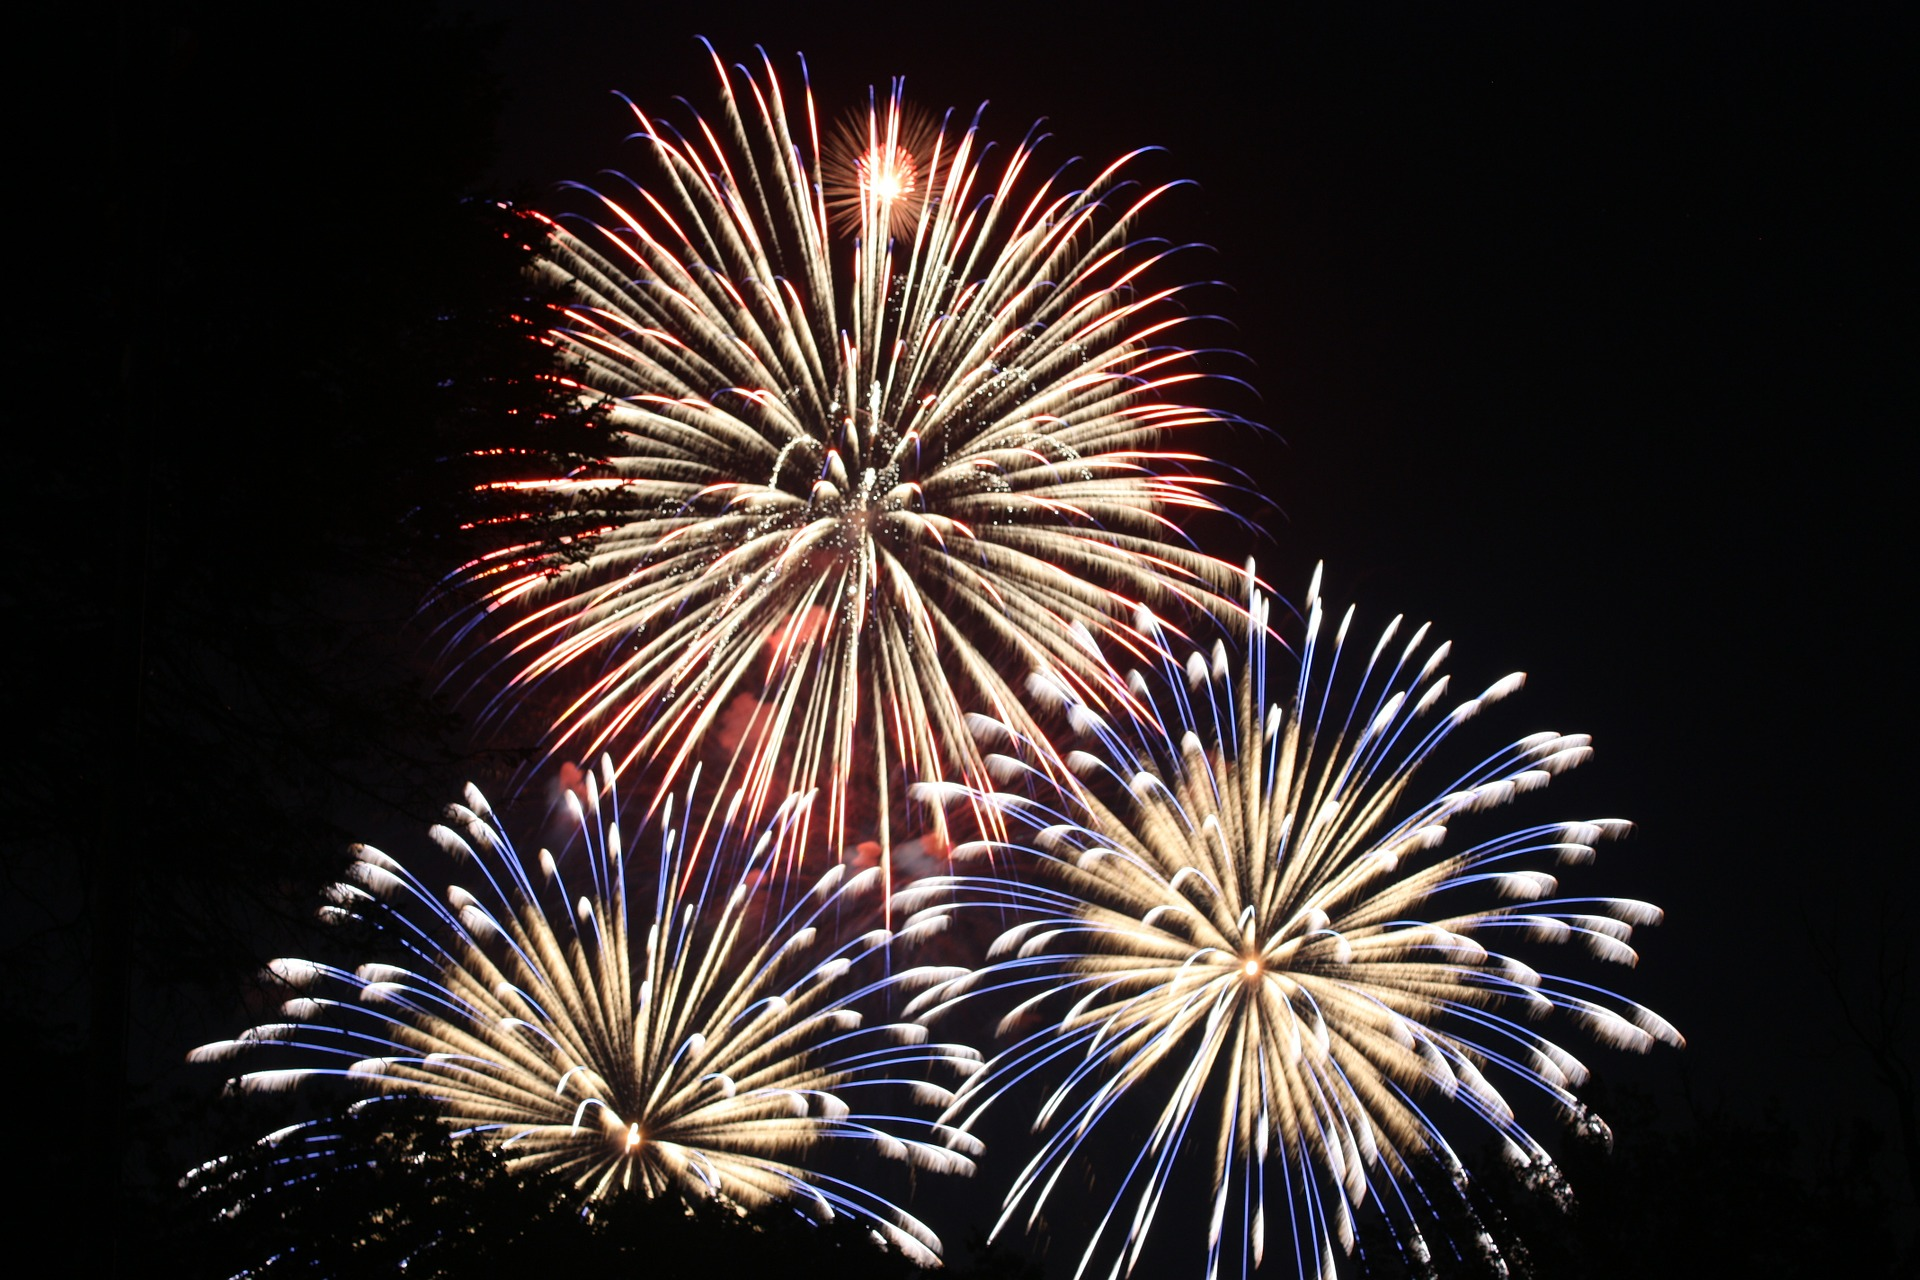 https://www.rhymebiz.com/sites/rhymebiz.com/assets/images/Newsroom/fireworks-459174_1920.jpg